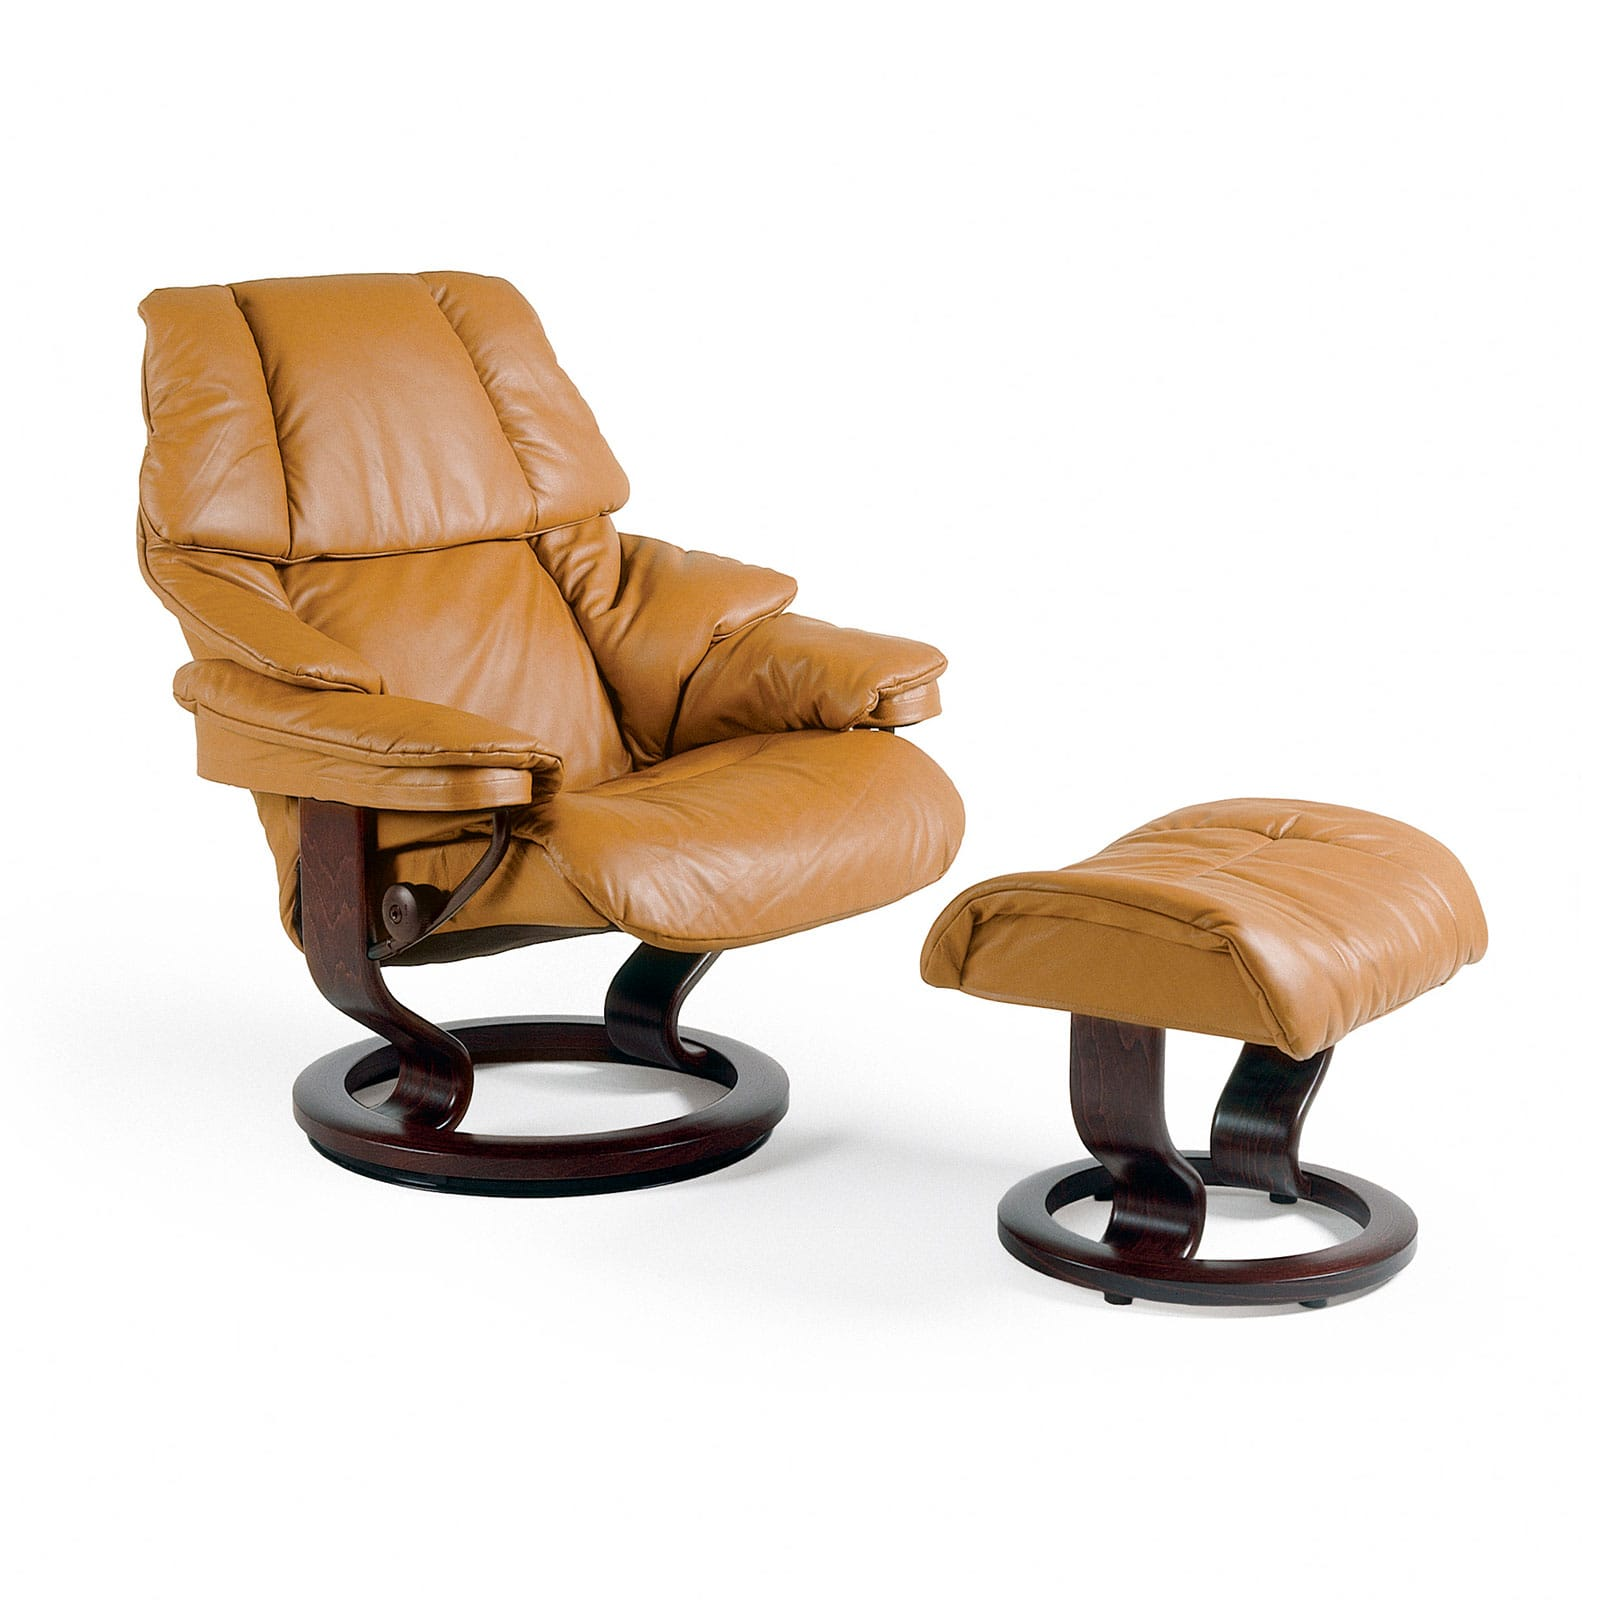 Stresless Stressless Sessel Reno Leder Cori Tan Mit Hocker